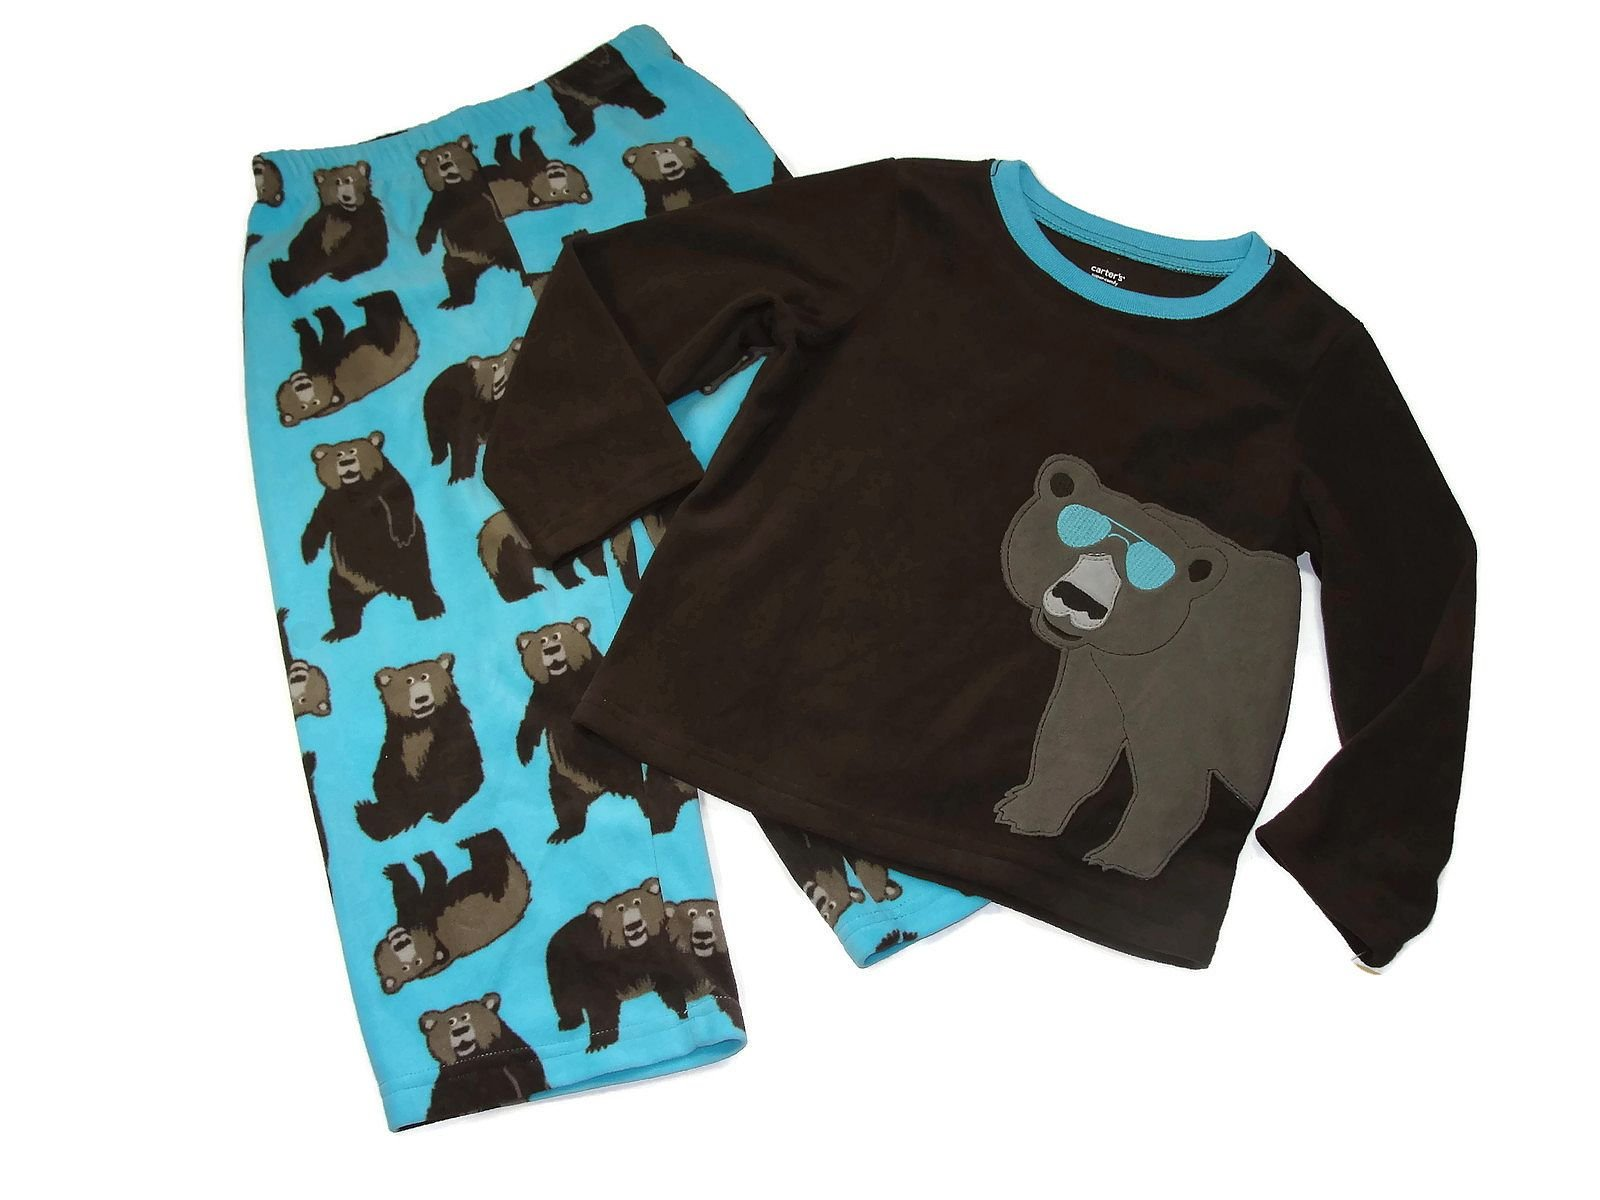 Carter's Boy's Size 4T Brown Bear with Sunglasses Fleece Pajama Set